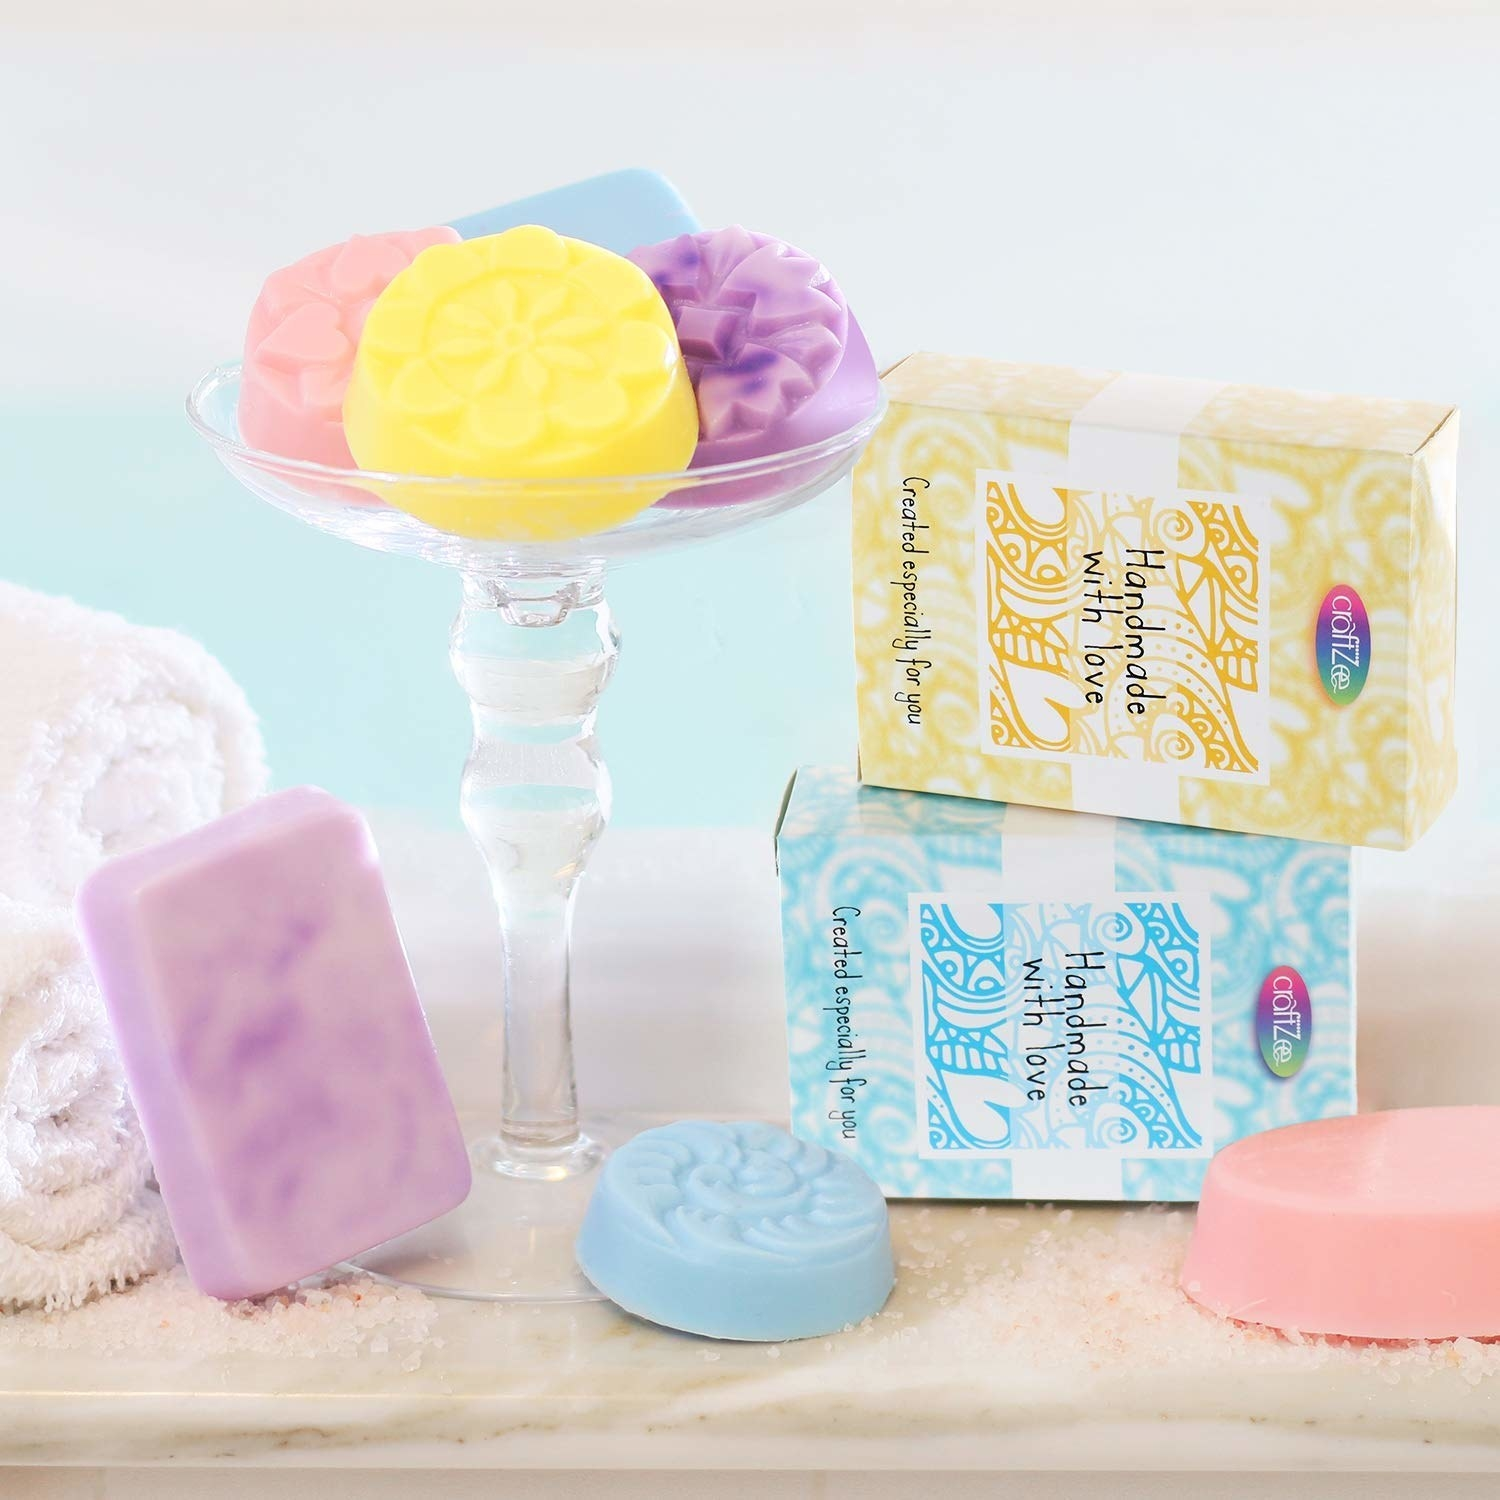 Brightly colored soaps on a stand